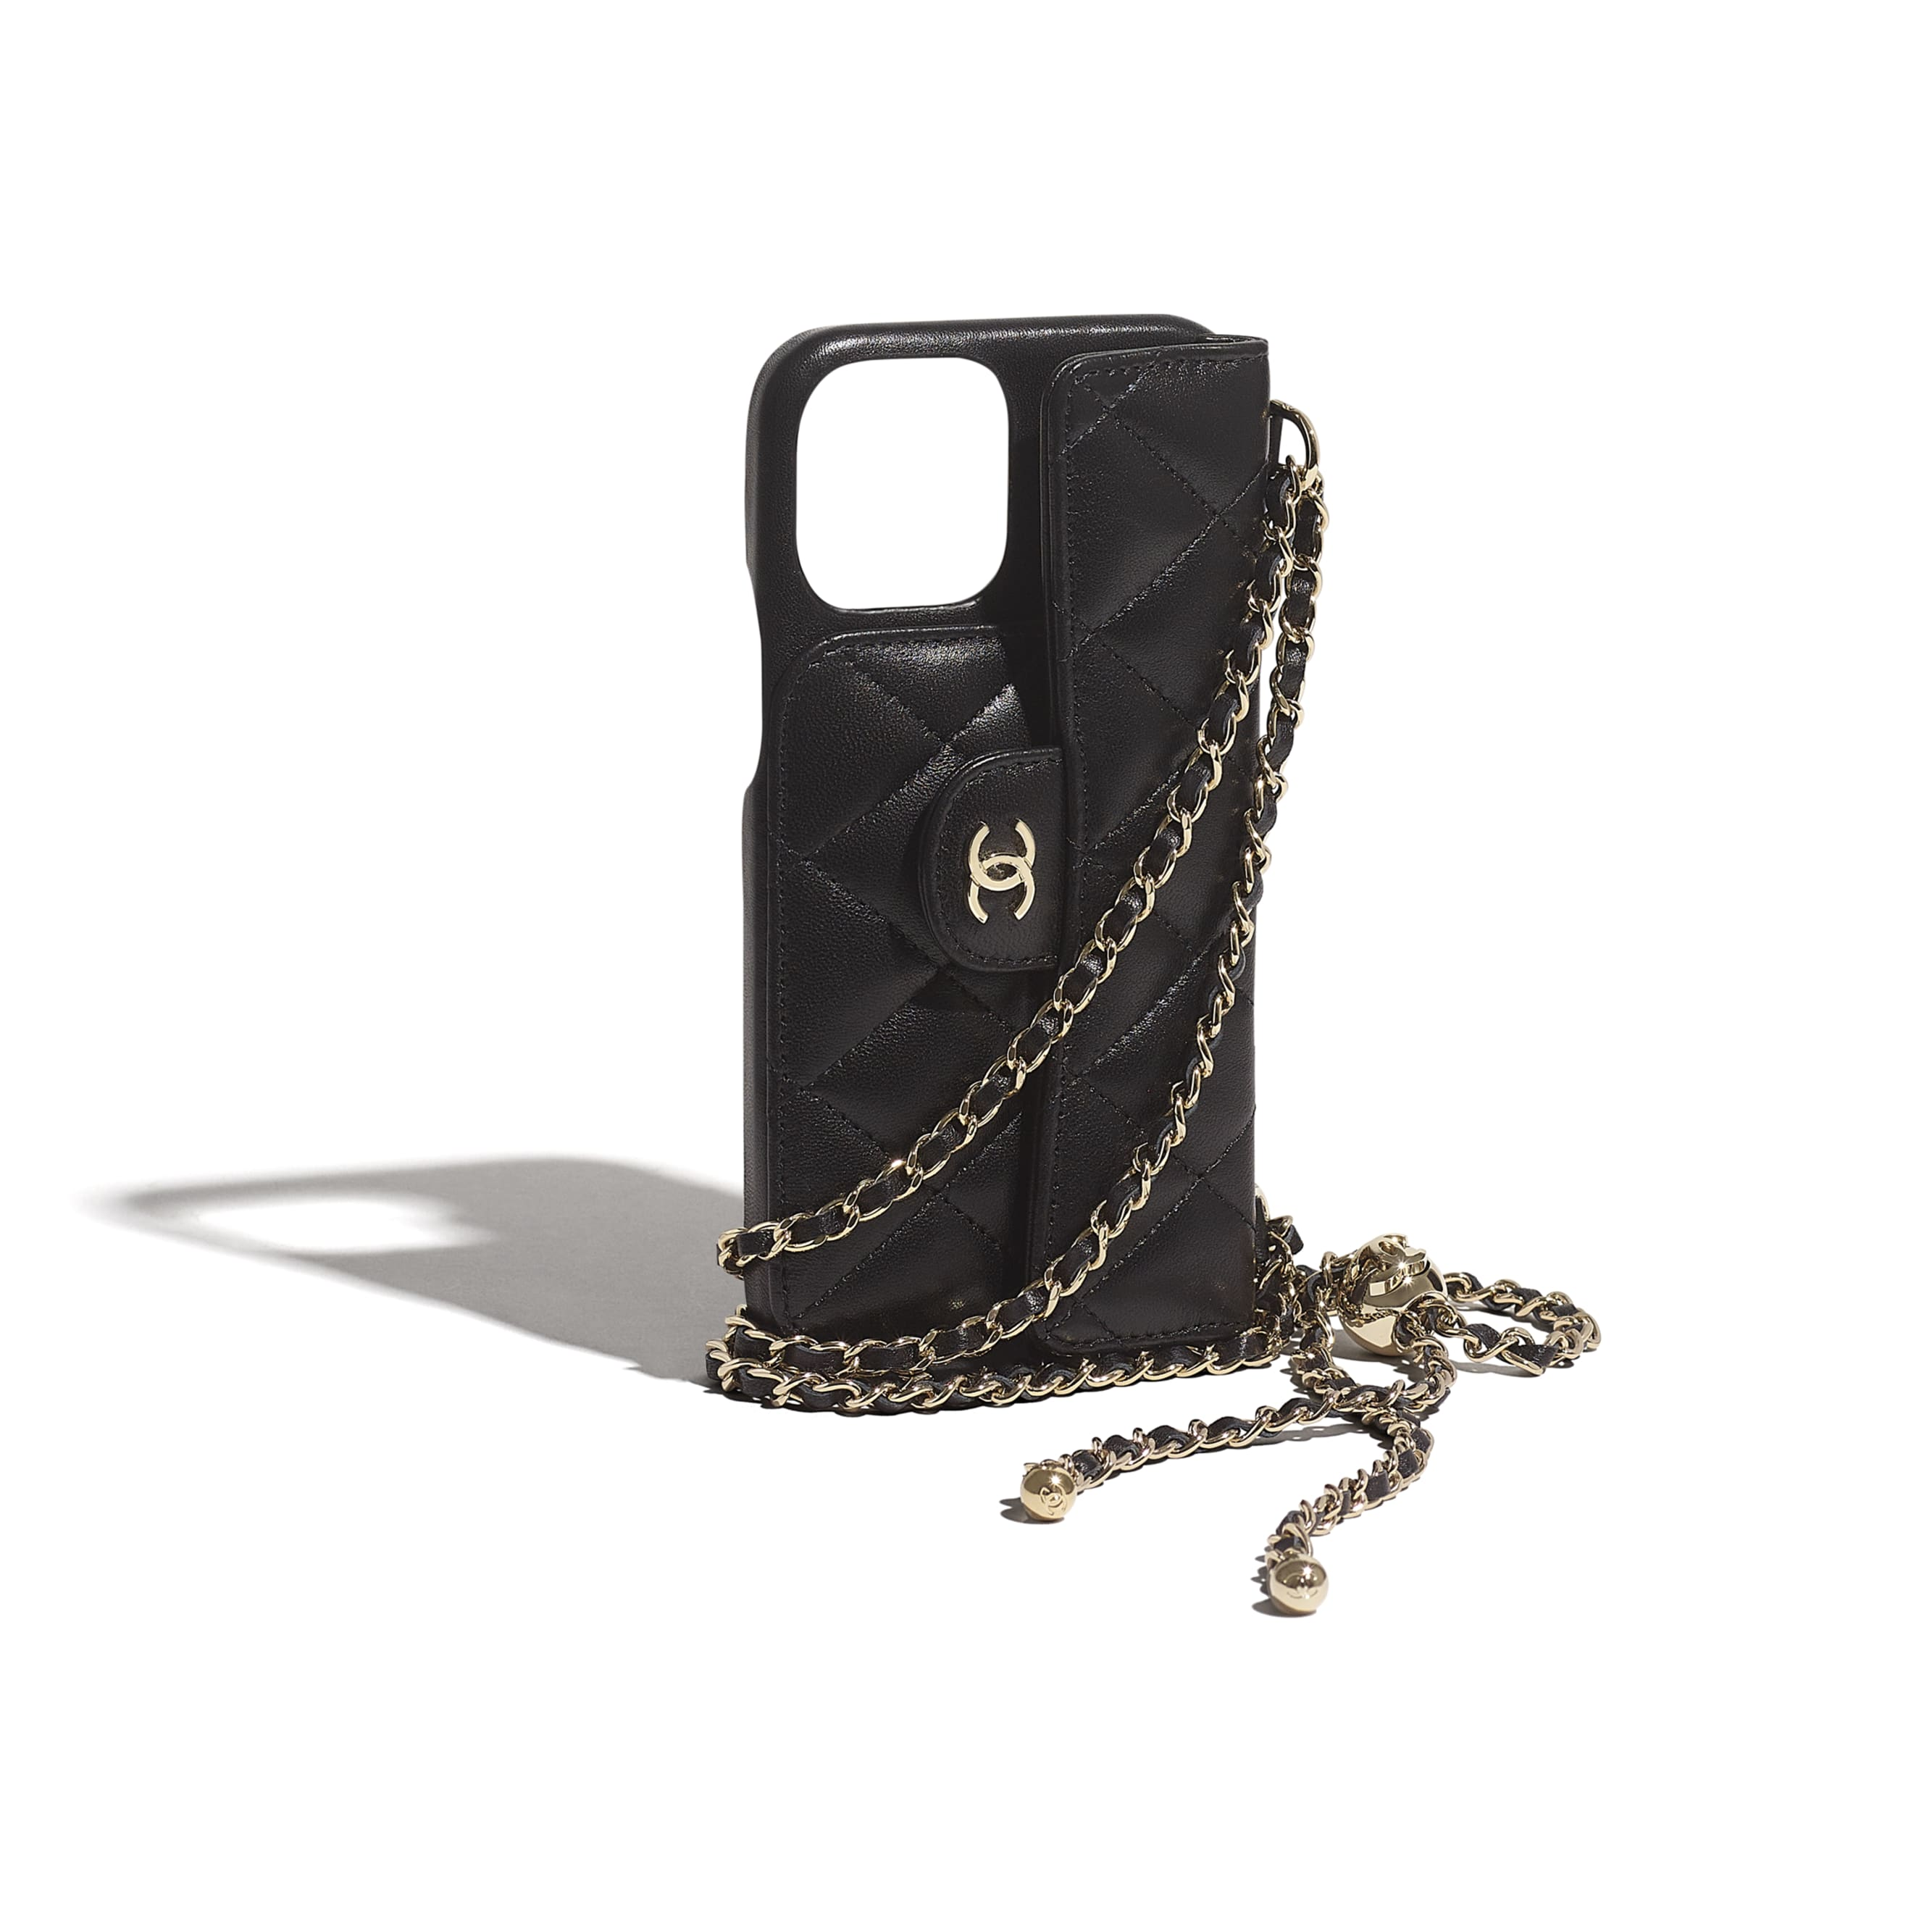 Classic Case for iPhone XII Pro MAX with chain - Black - Lambskin - CHANEL - Extra view - see standard sized version